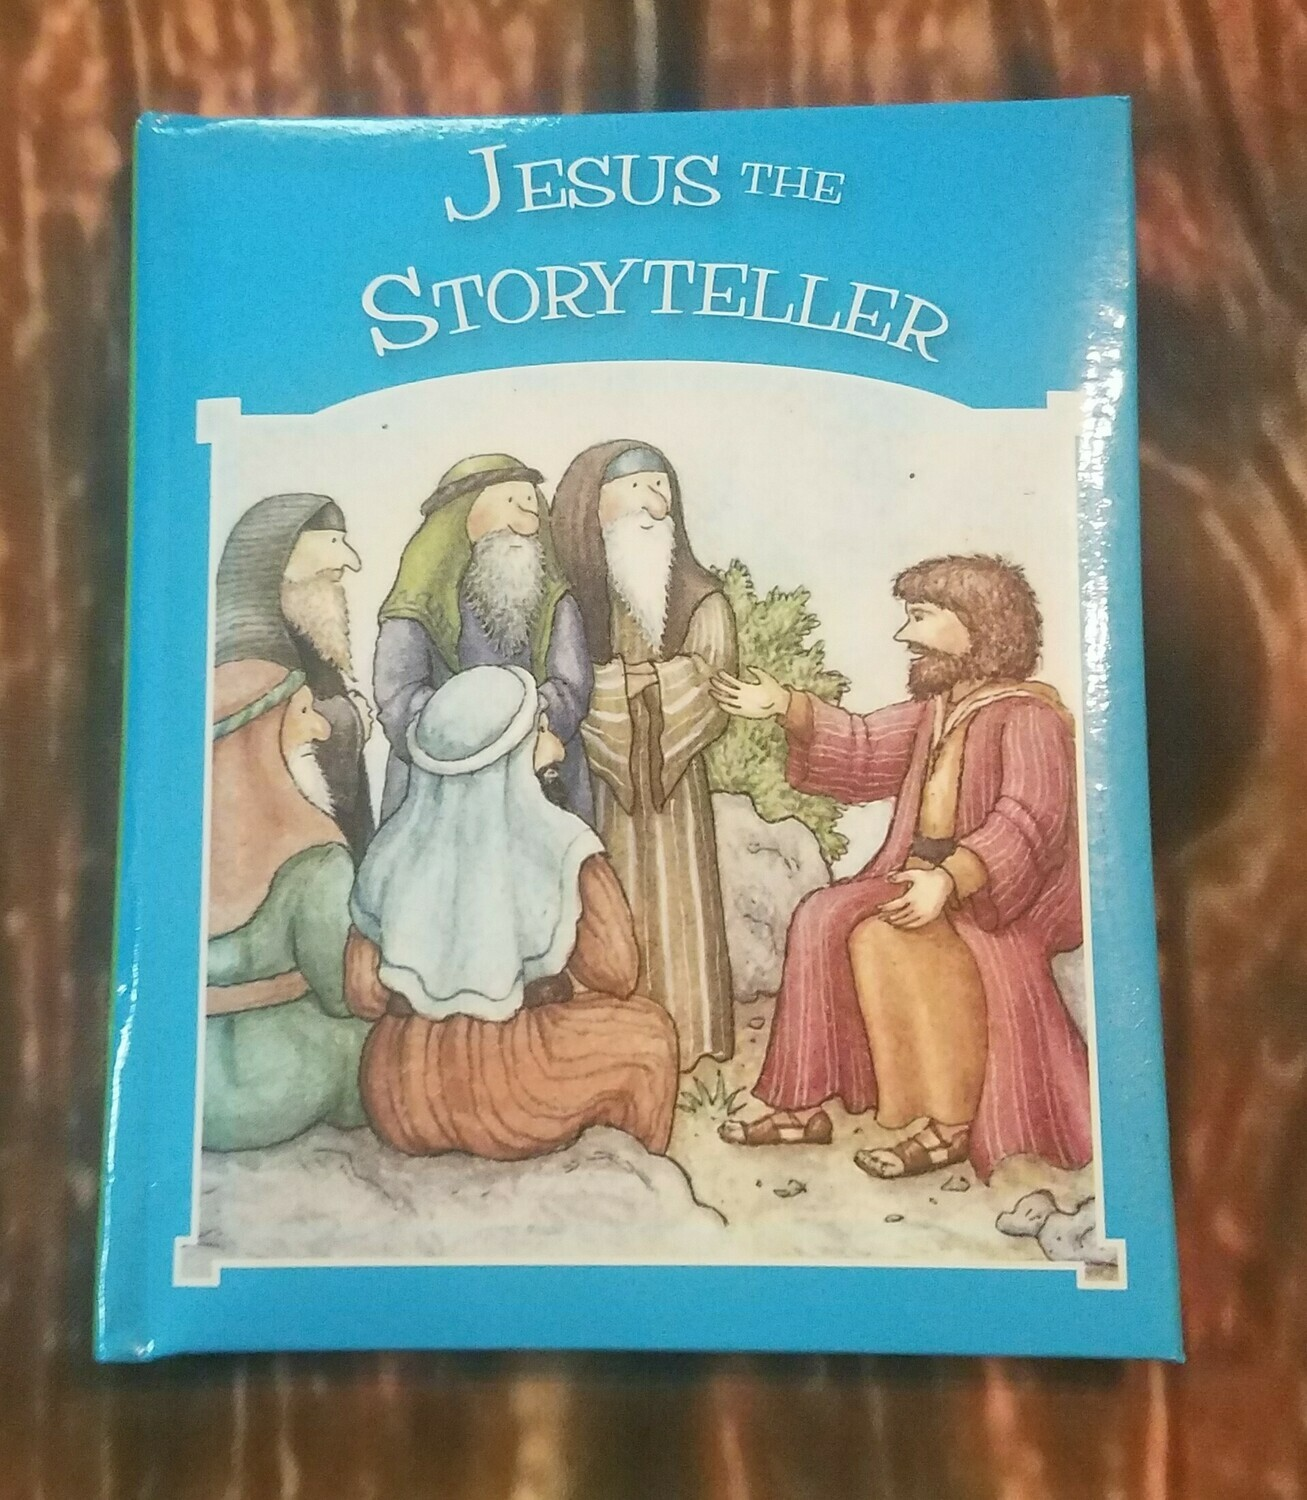 Jesus the Storyteller by Tim and Jenny Wood